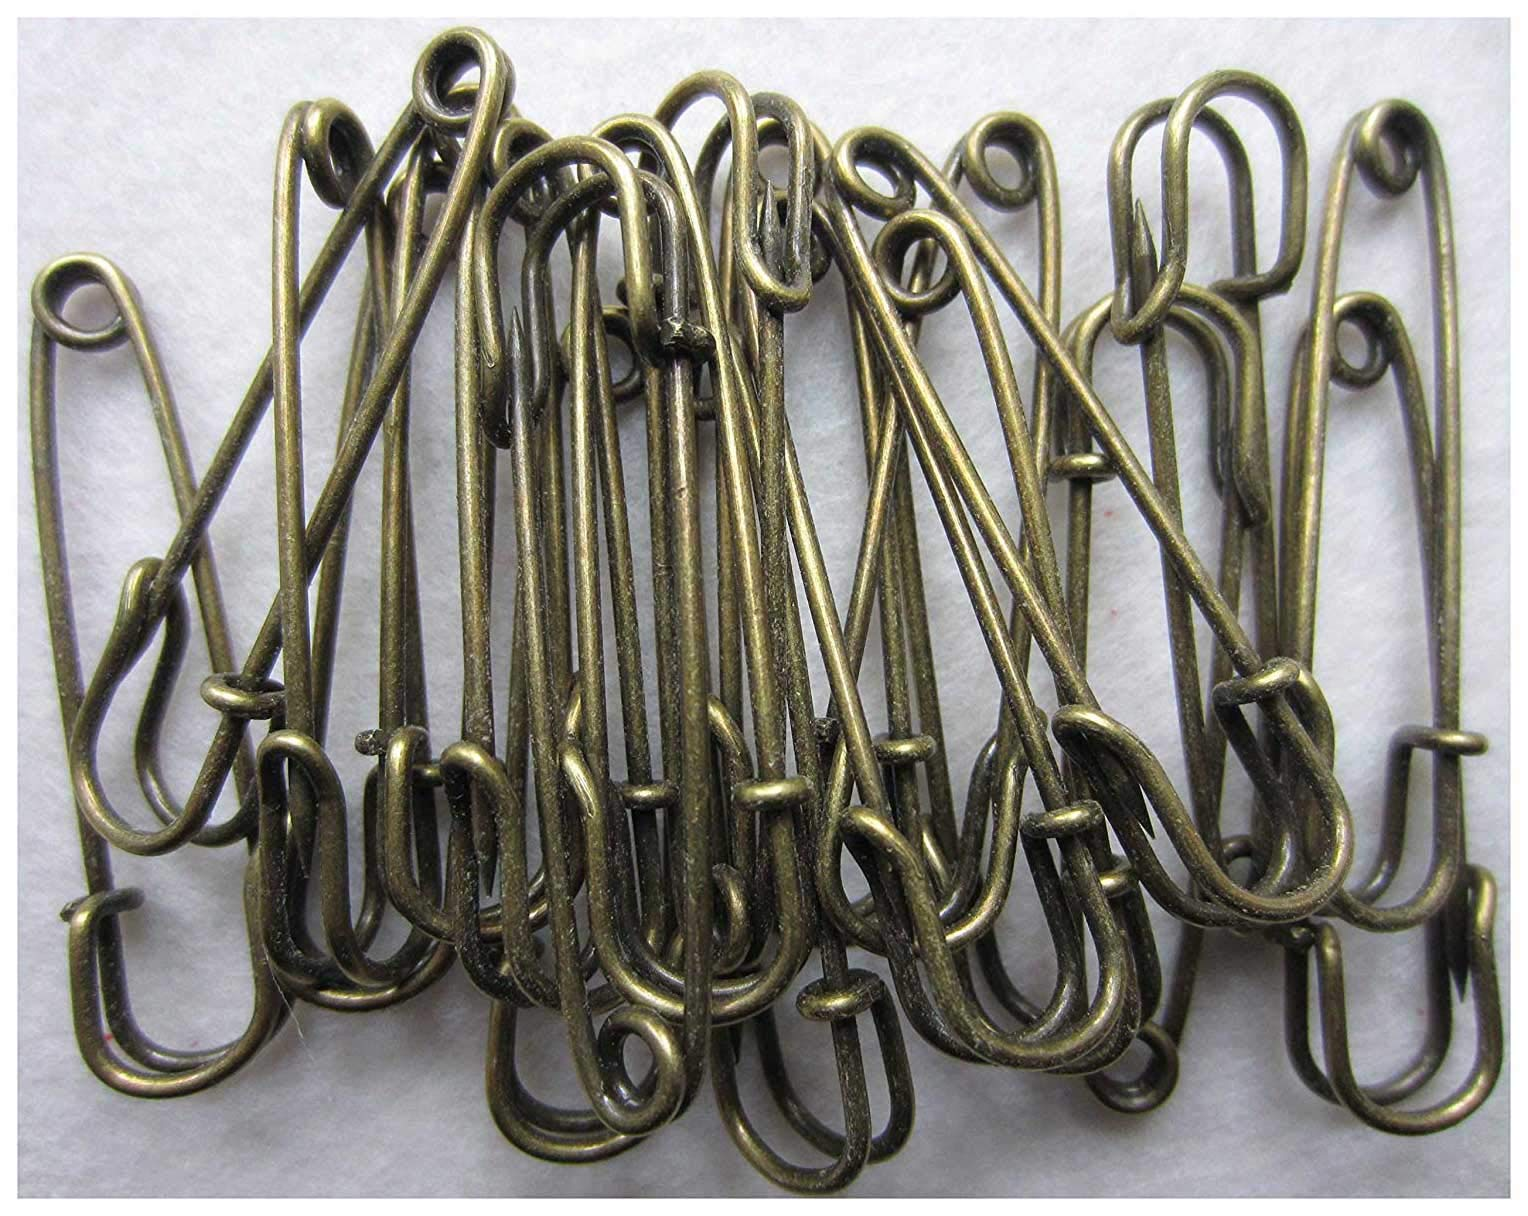 """Crafts,Clothing Kilts 2.76 Upholstery 30pcs Skirts Heavy Duty Safety Pins- 30pcs Large 2.76/"""" Extra Strong Steel Metal Spring Lock Pin Fasteners with for Blankets"""